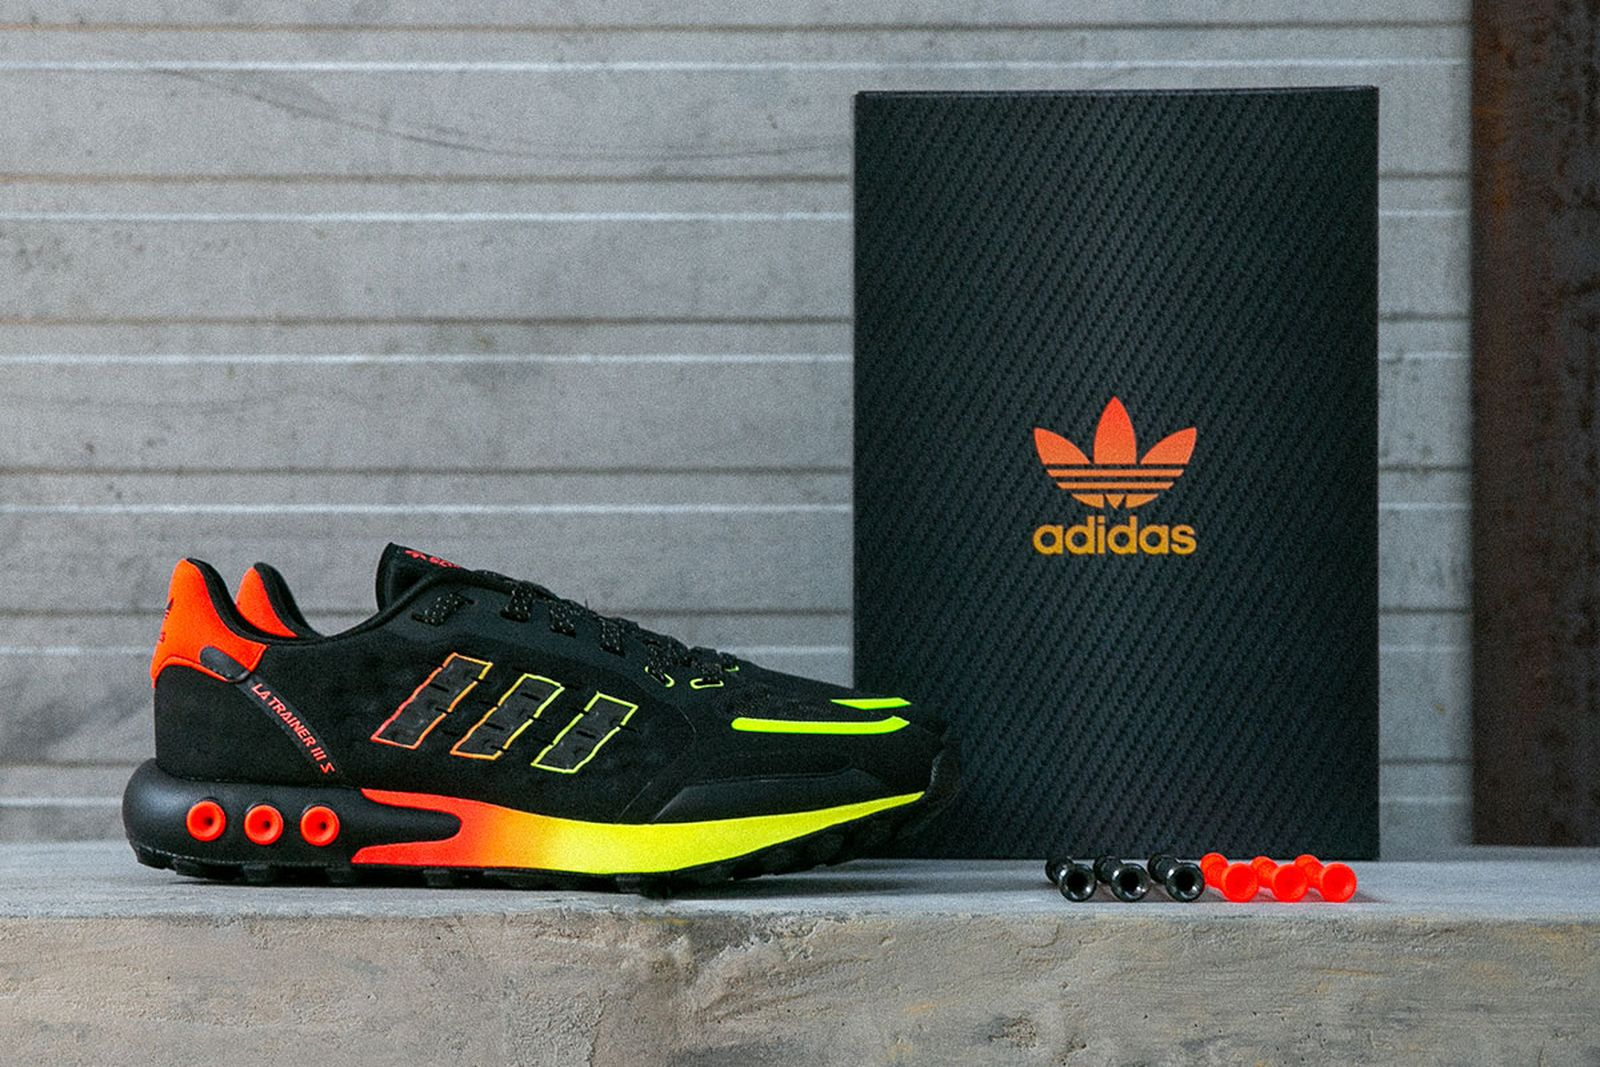 adidas-foot-locker-iii-s-release-date-price-05